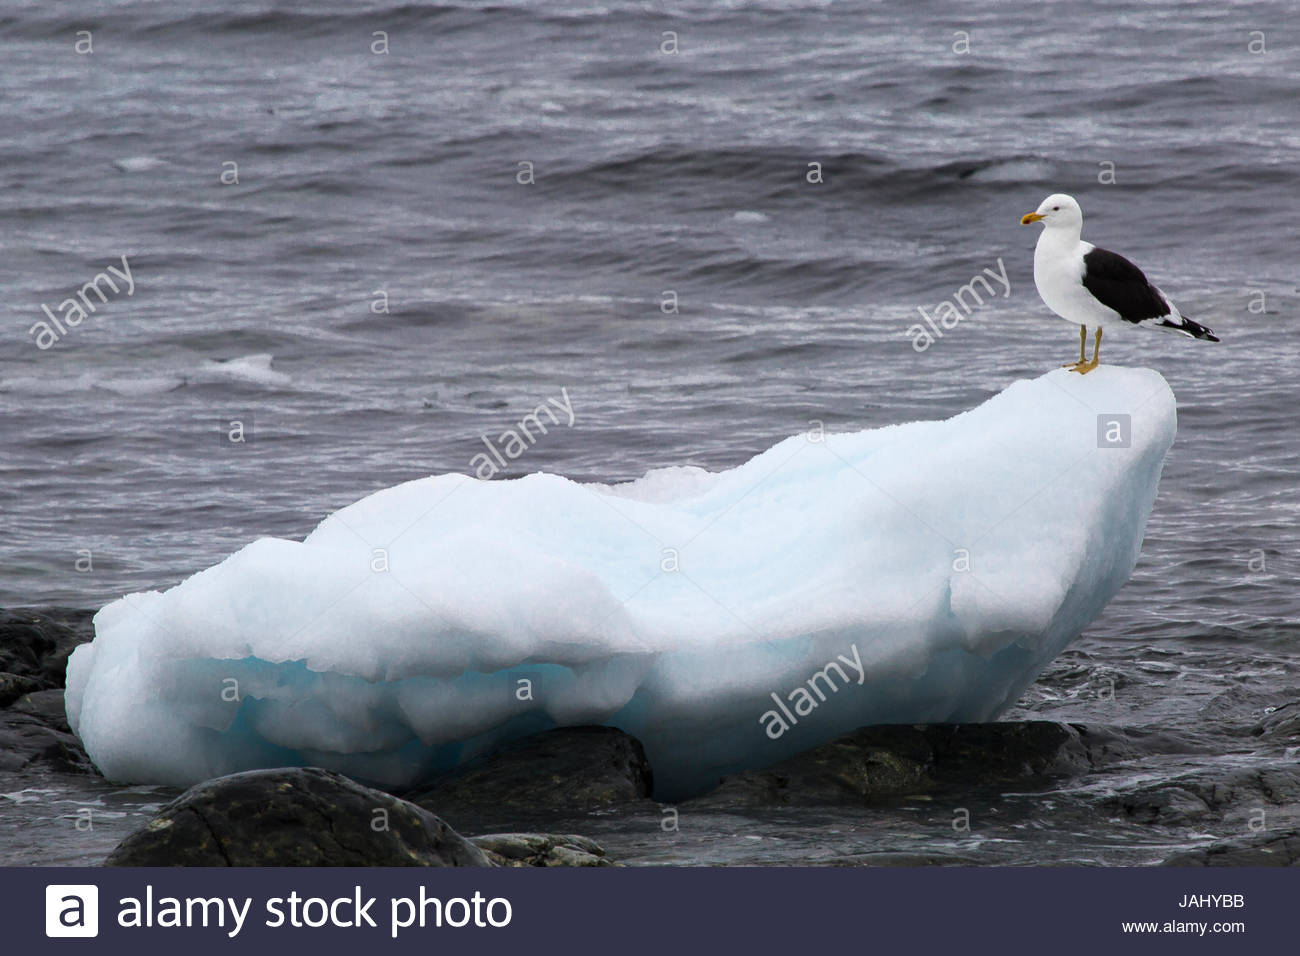 A kelp gull, Larus dominicanus, perched on an ice floe at Cuverville Island, Antarctica. - Stock Image